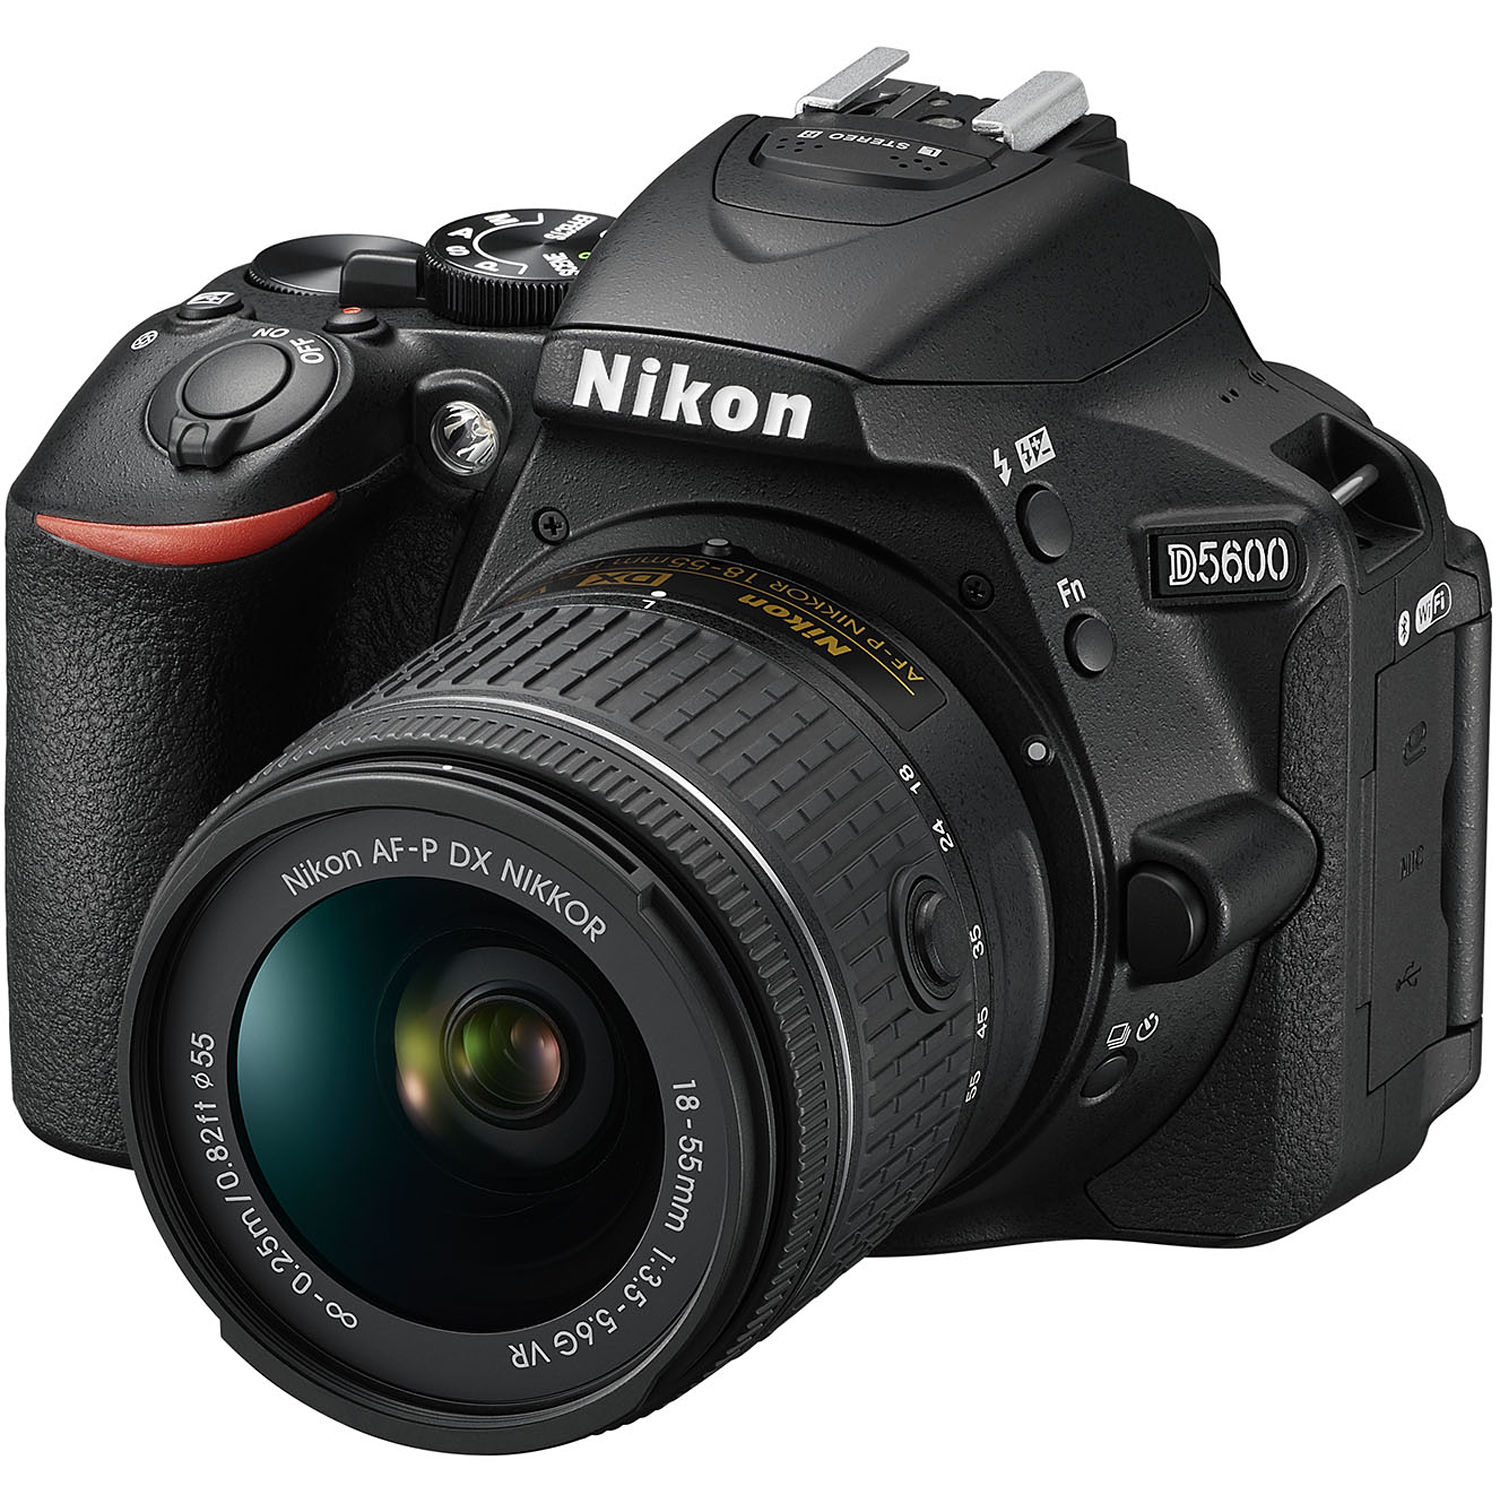 Nikon D5600 DSLR Camera with 18-55mm Lens 1576 B&H Photo Video